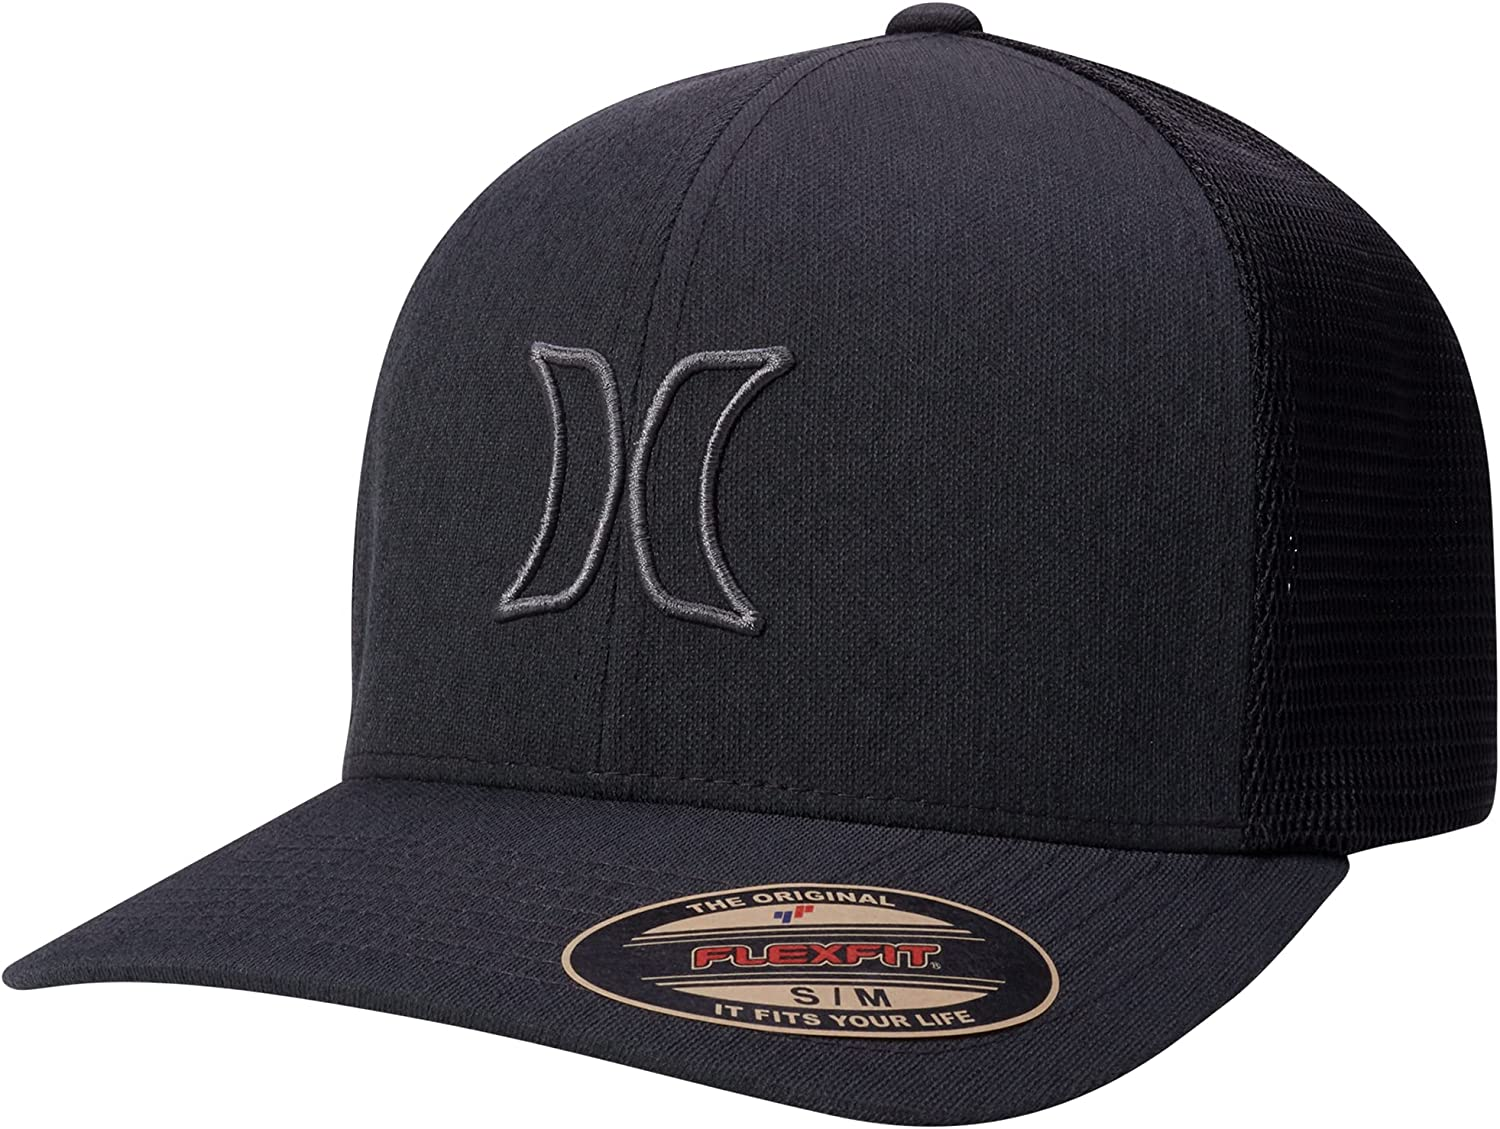 Hurley Men's Baseball Cap - Port Icon Curved Brim Fitted Trucker Hat: Clothing